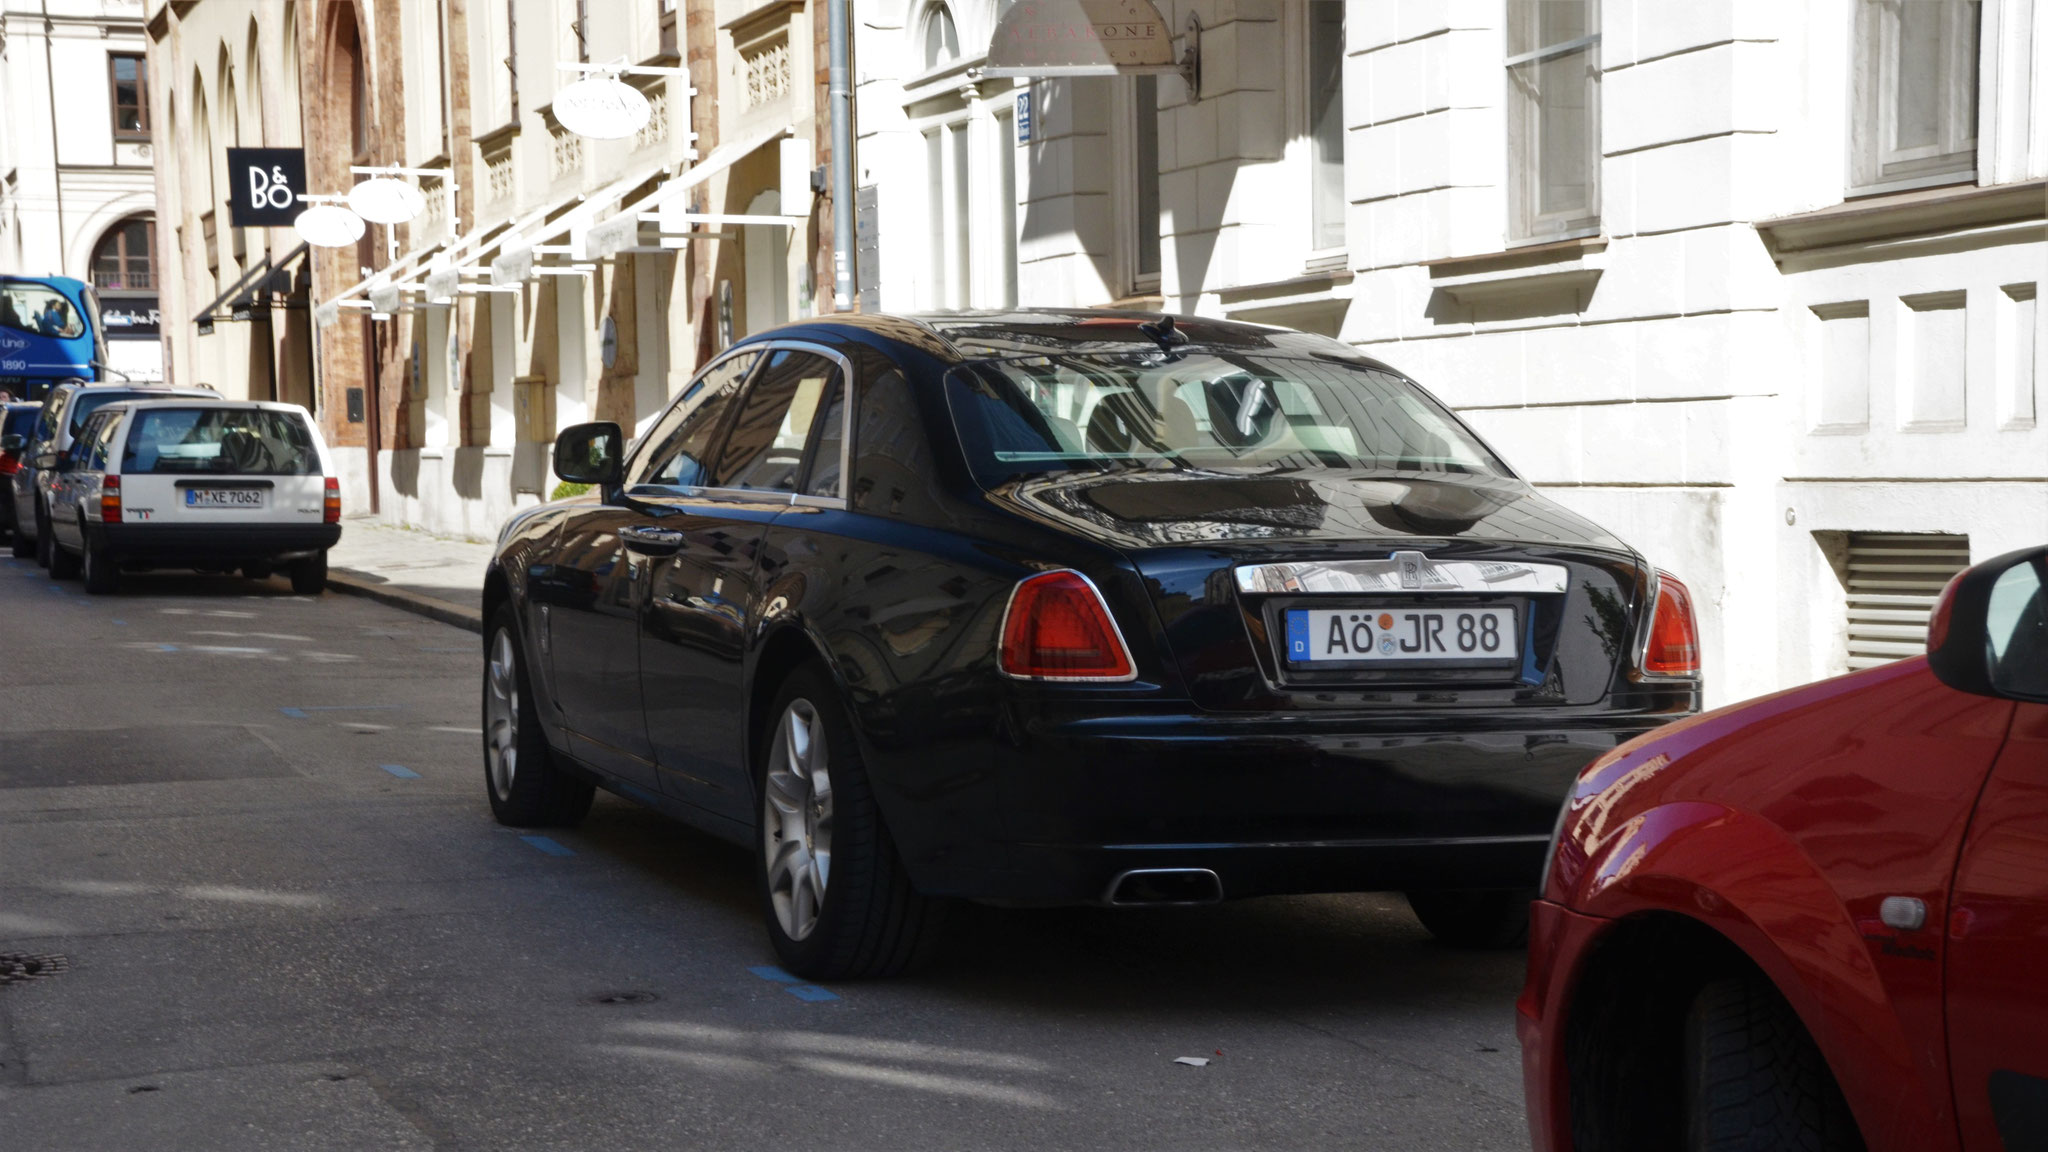 Rolls Royce Ghost - AÖ-JR-88